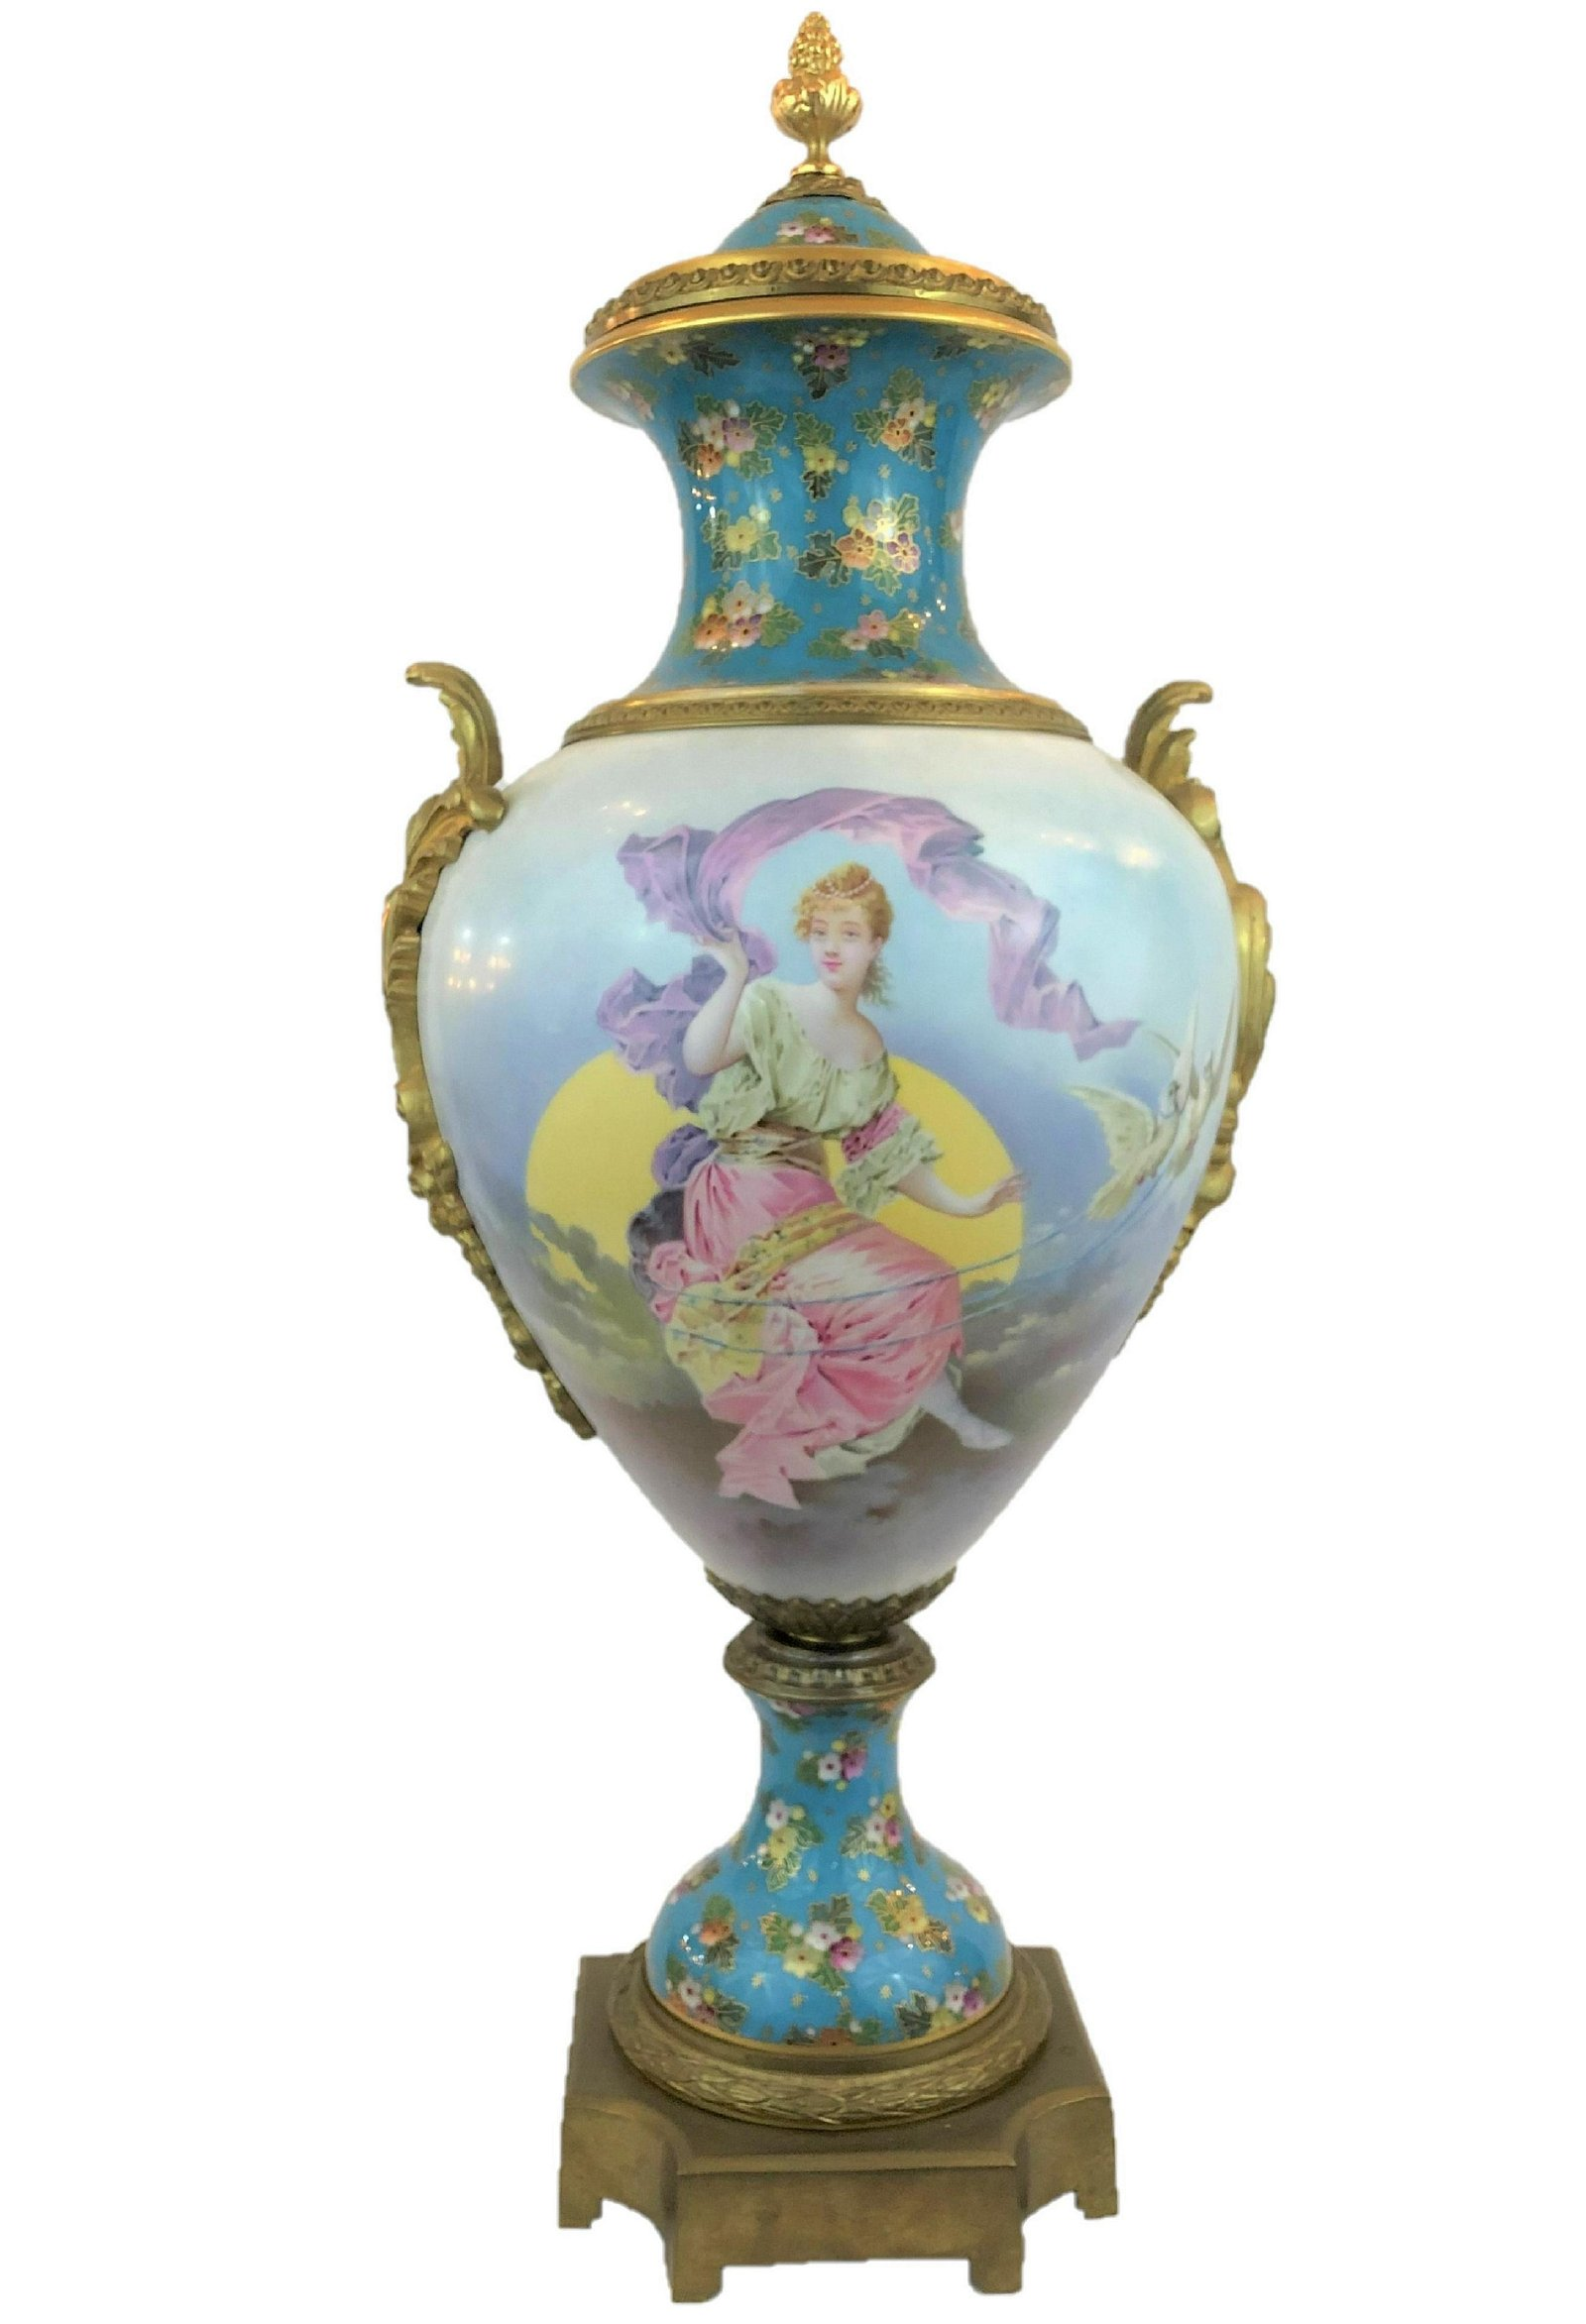 Antique sevres of the 19th century with champleve